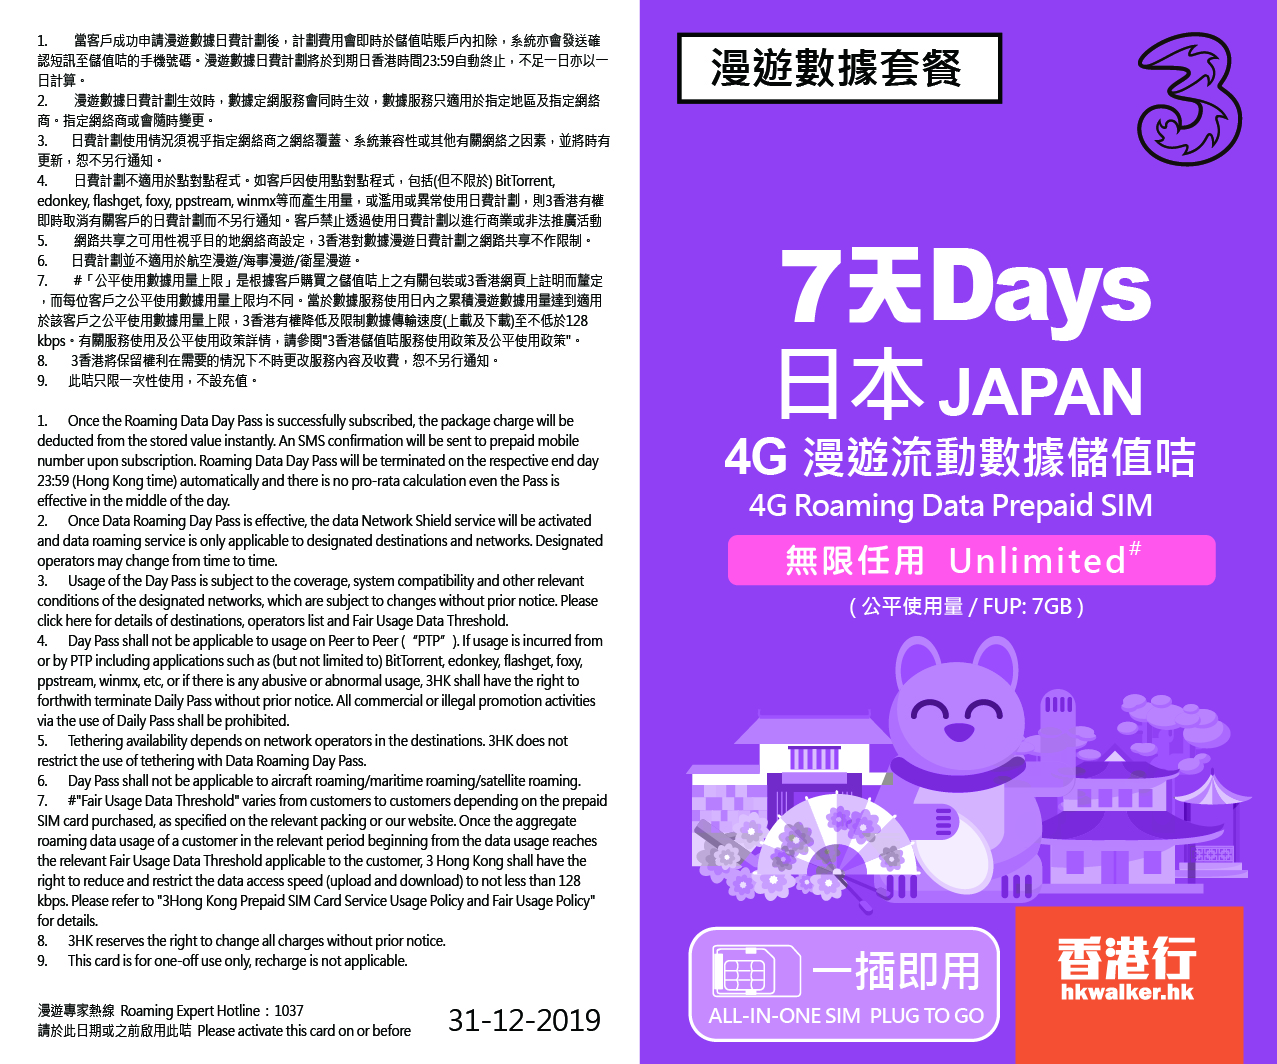 (Upgrade to 35GB) 3HK x HKWalker Exclusive Japan Docomo 7days 4G LTE  Unlimited Data Internet SIM Card (Last Activation Date : 31/12/2019) (FUP:  35GB)